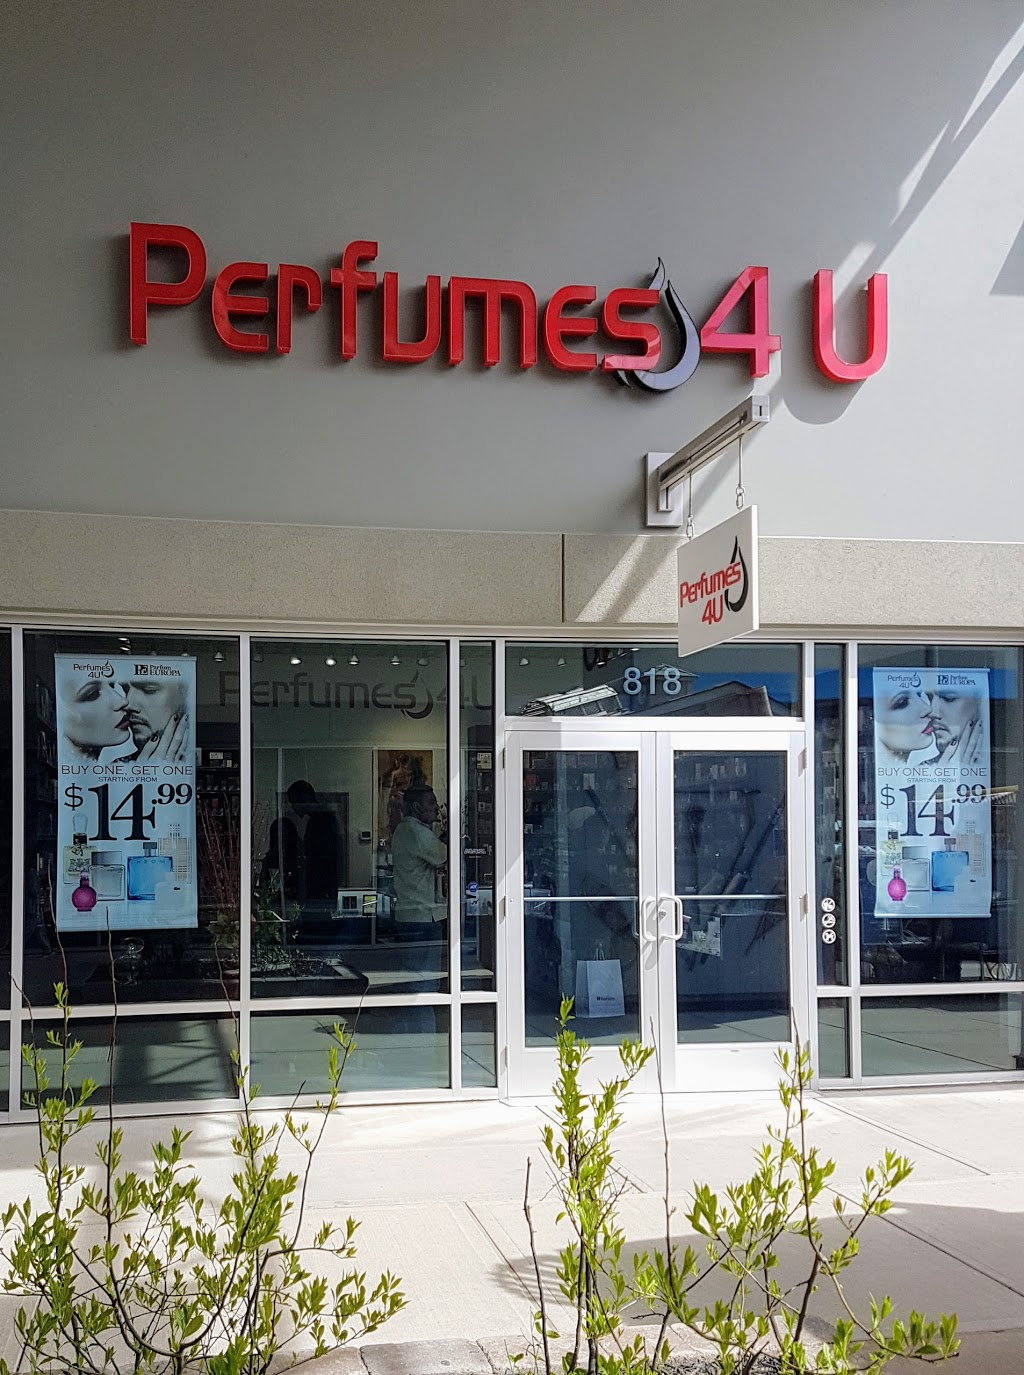 Perfumes 4U | clothing store | 13850 Steeles Avenue W, Suite 818, Halton Hills, ON L7G 0J1, Canada | 9058640094 OR +1 905-864-0094